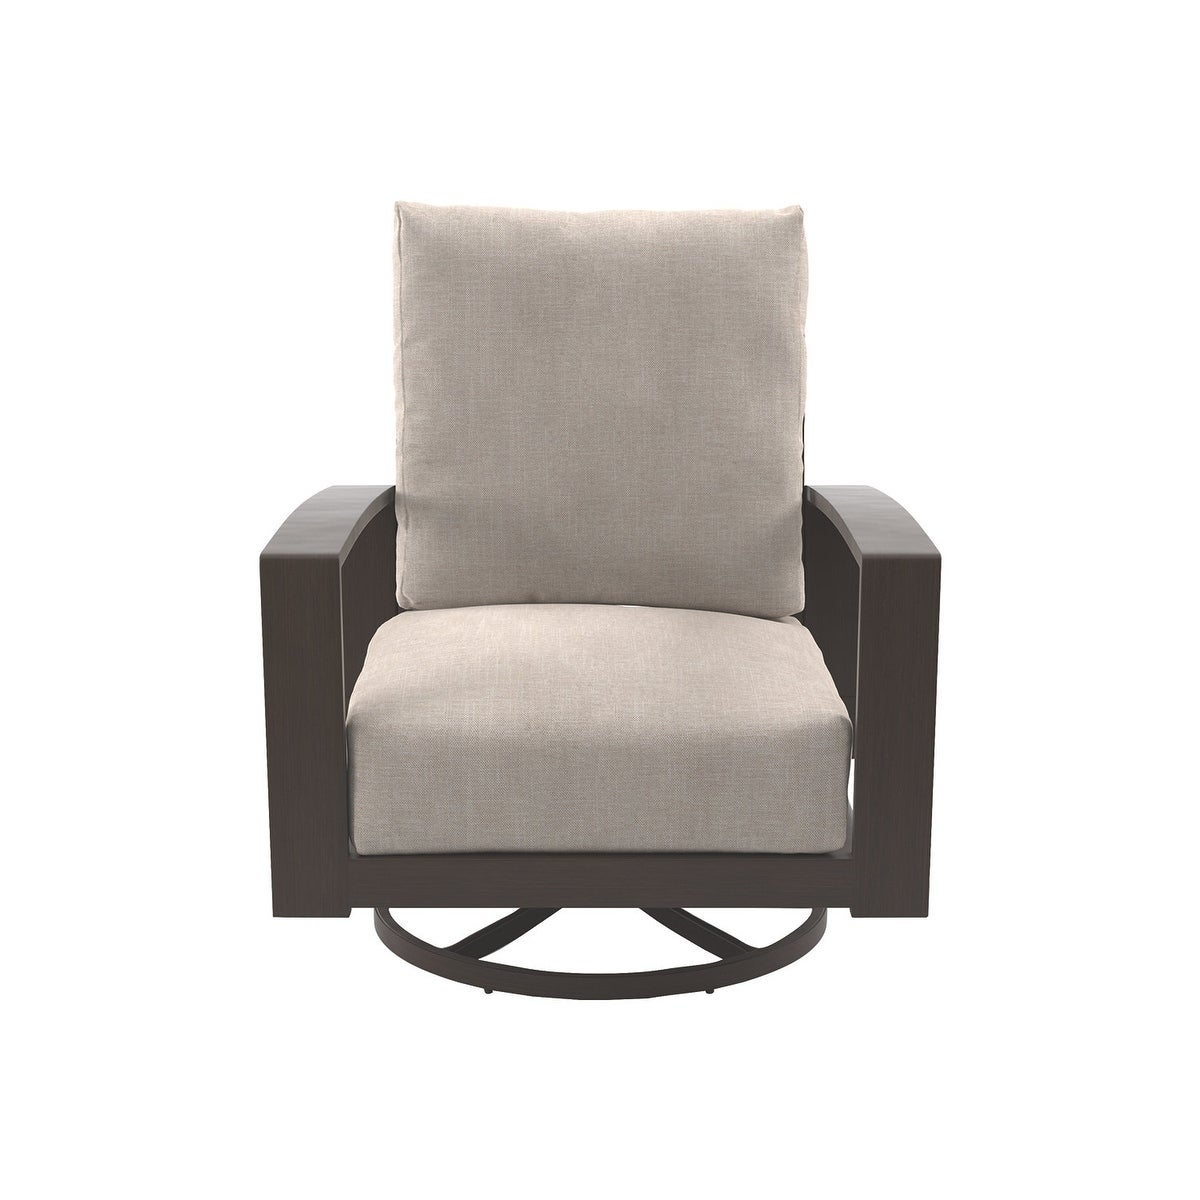 Shop Signature Design By Ashley Cordova Reef Beige Swivel Chairs Set Of 2    Free Shipping Today   Overstock.com   20586445